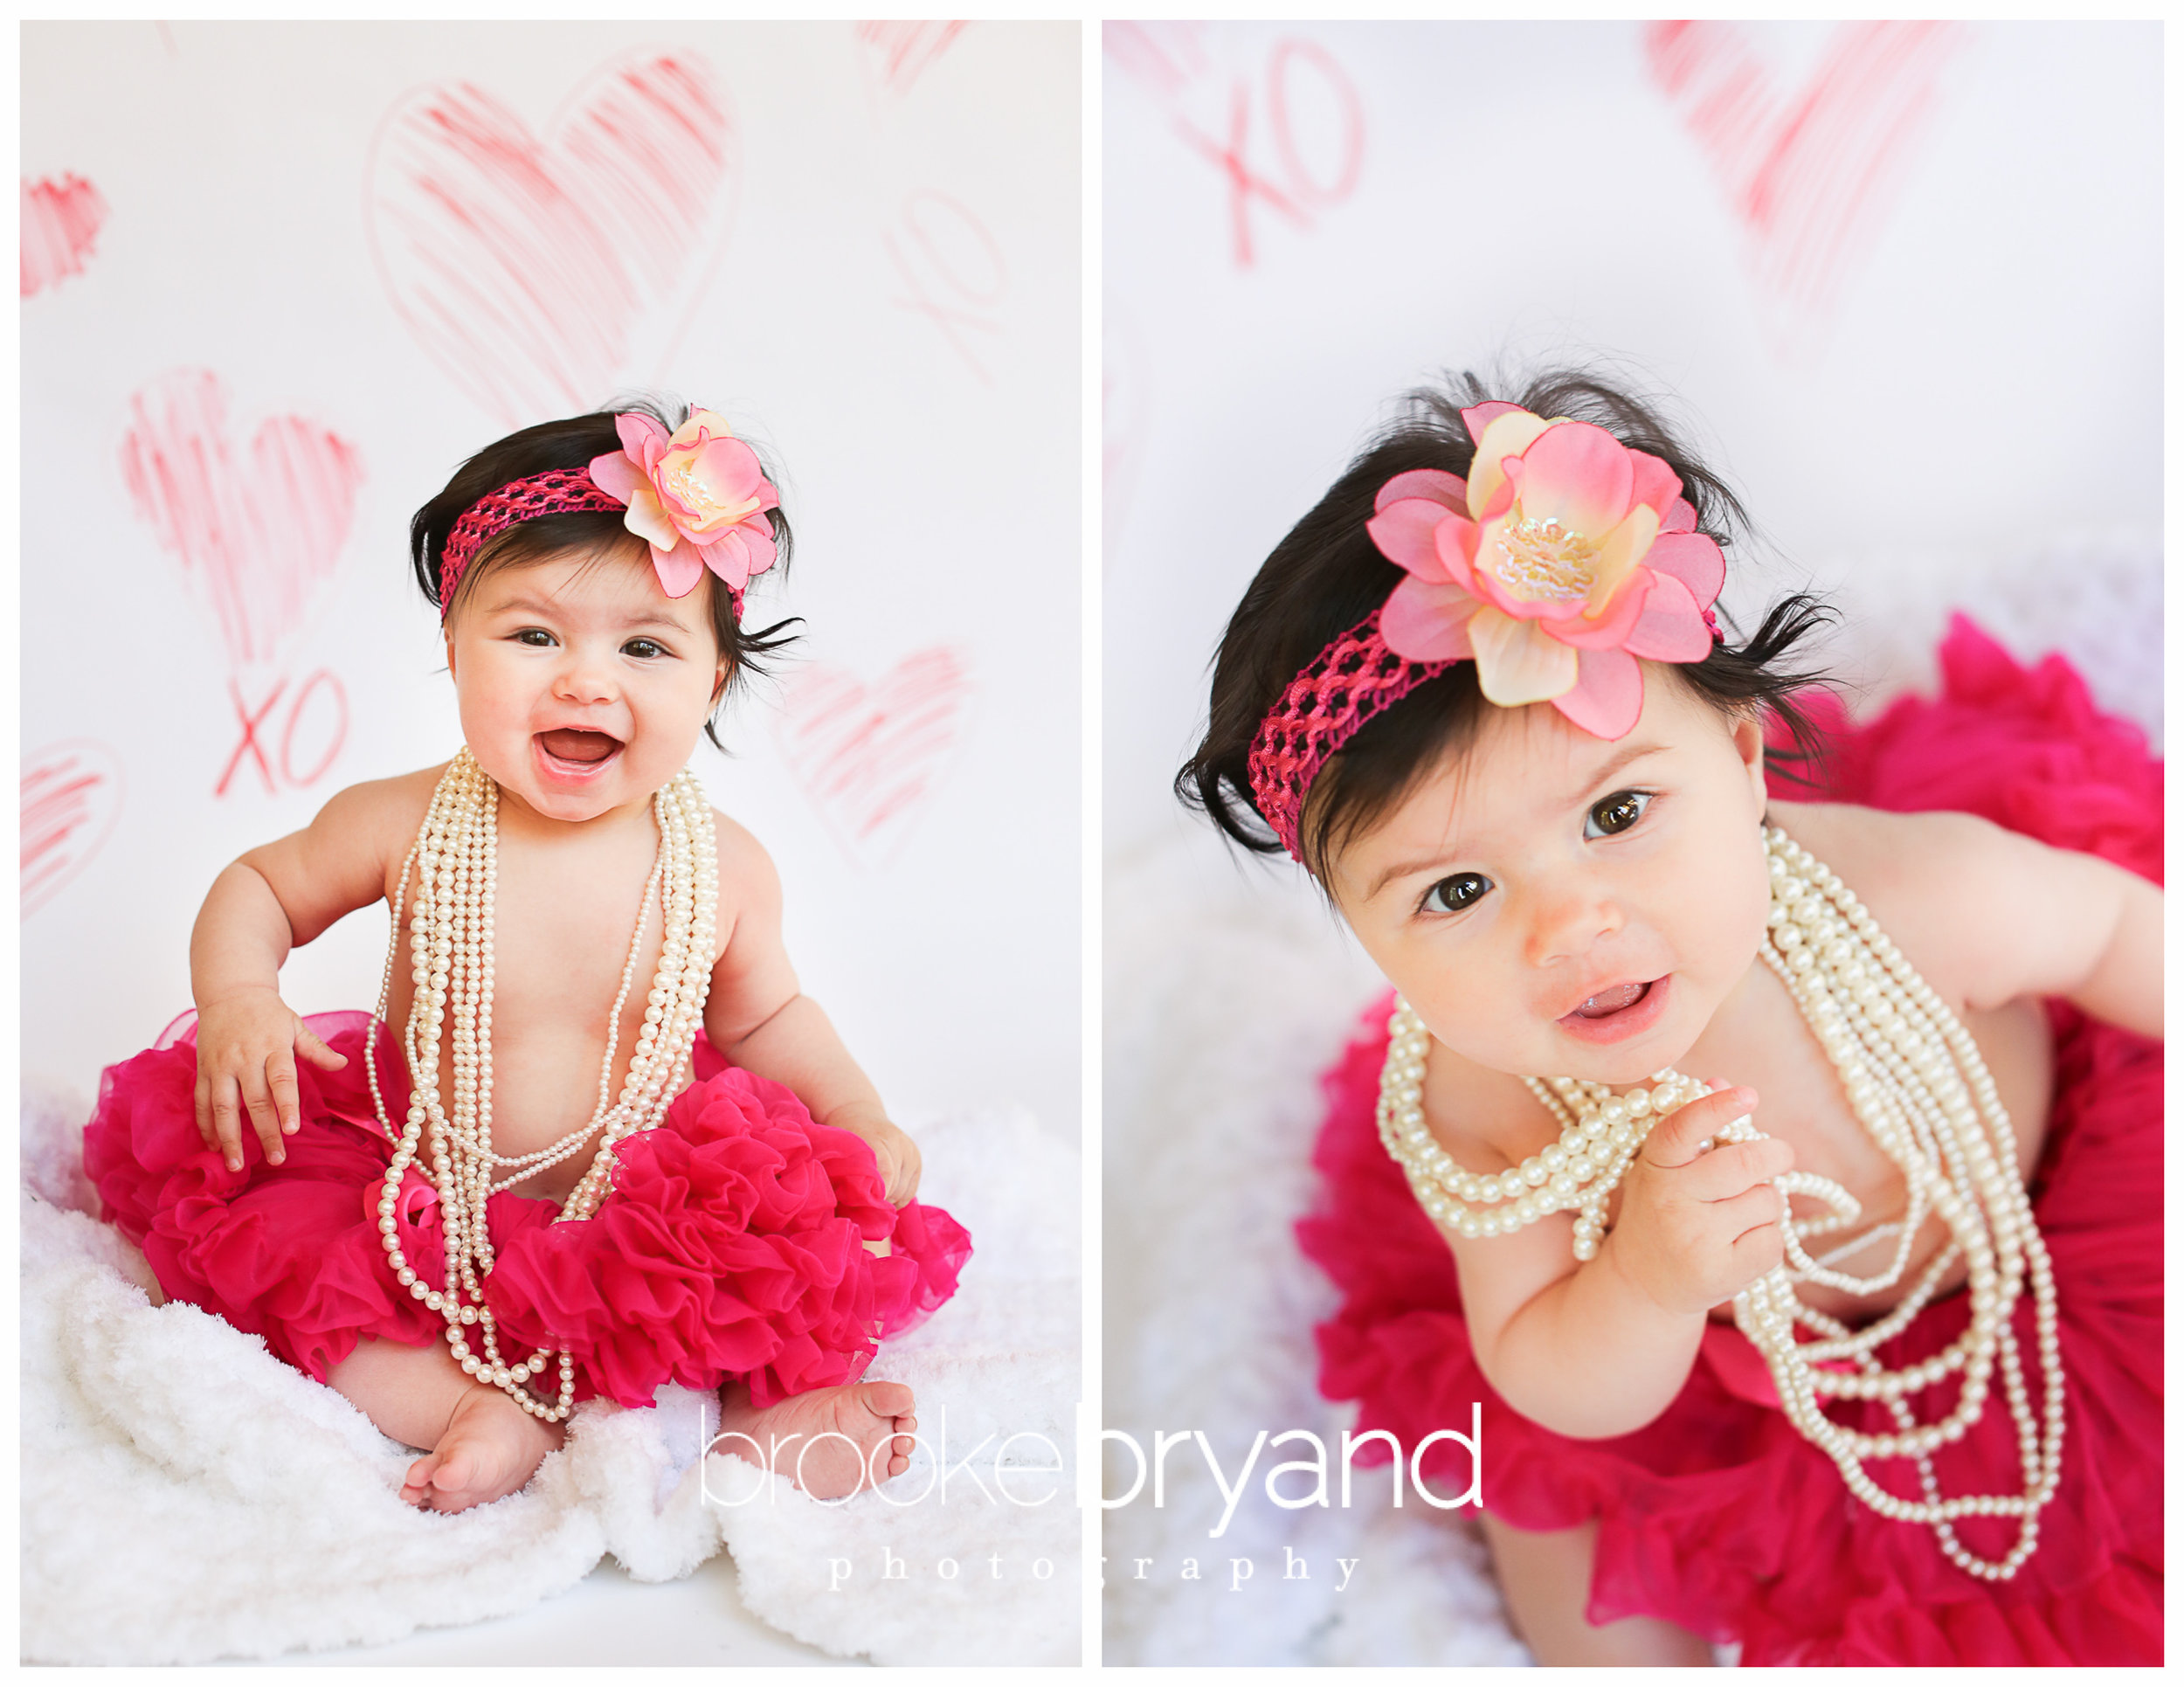 Brooke-Bryand-Photography-Valentines-Day-Child-Photo-2-up-lily-vday.jpg